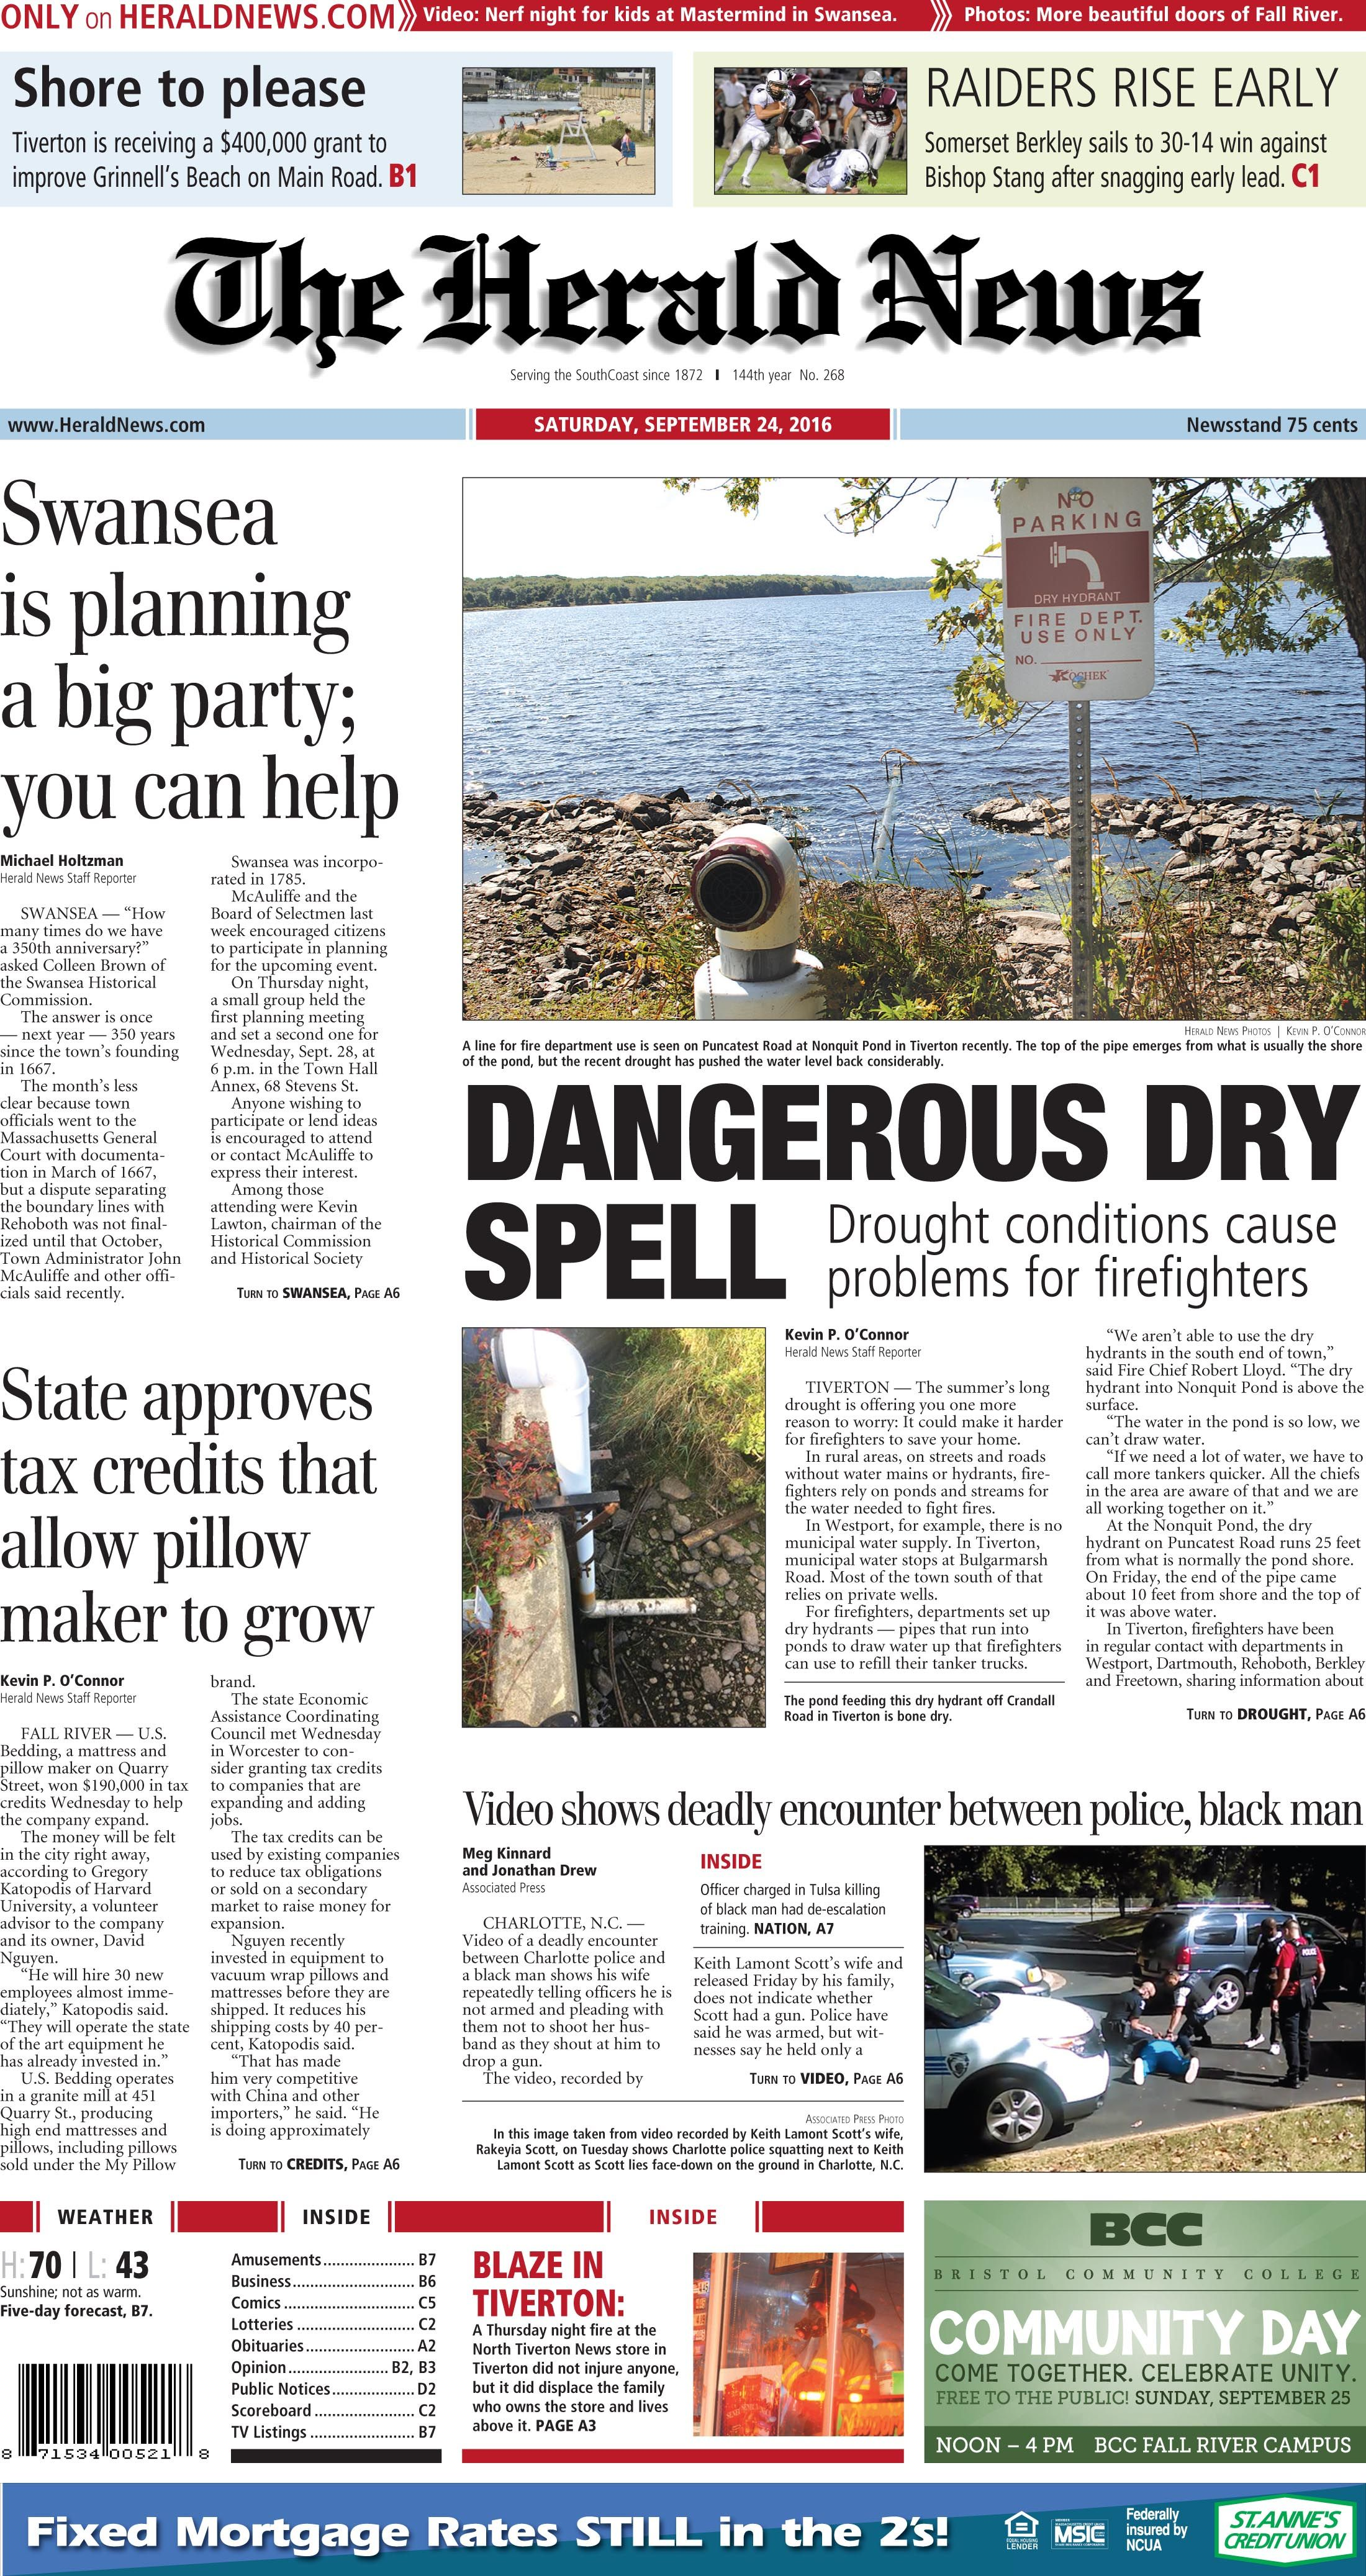 Pin By The Herald News Of Fall River On Herald News Front Pages Herald News Fall River Grinnell